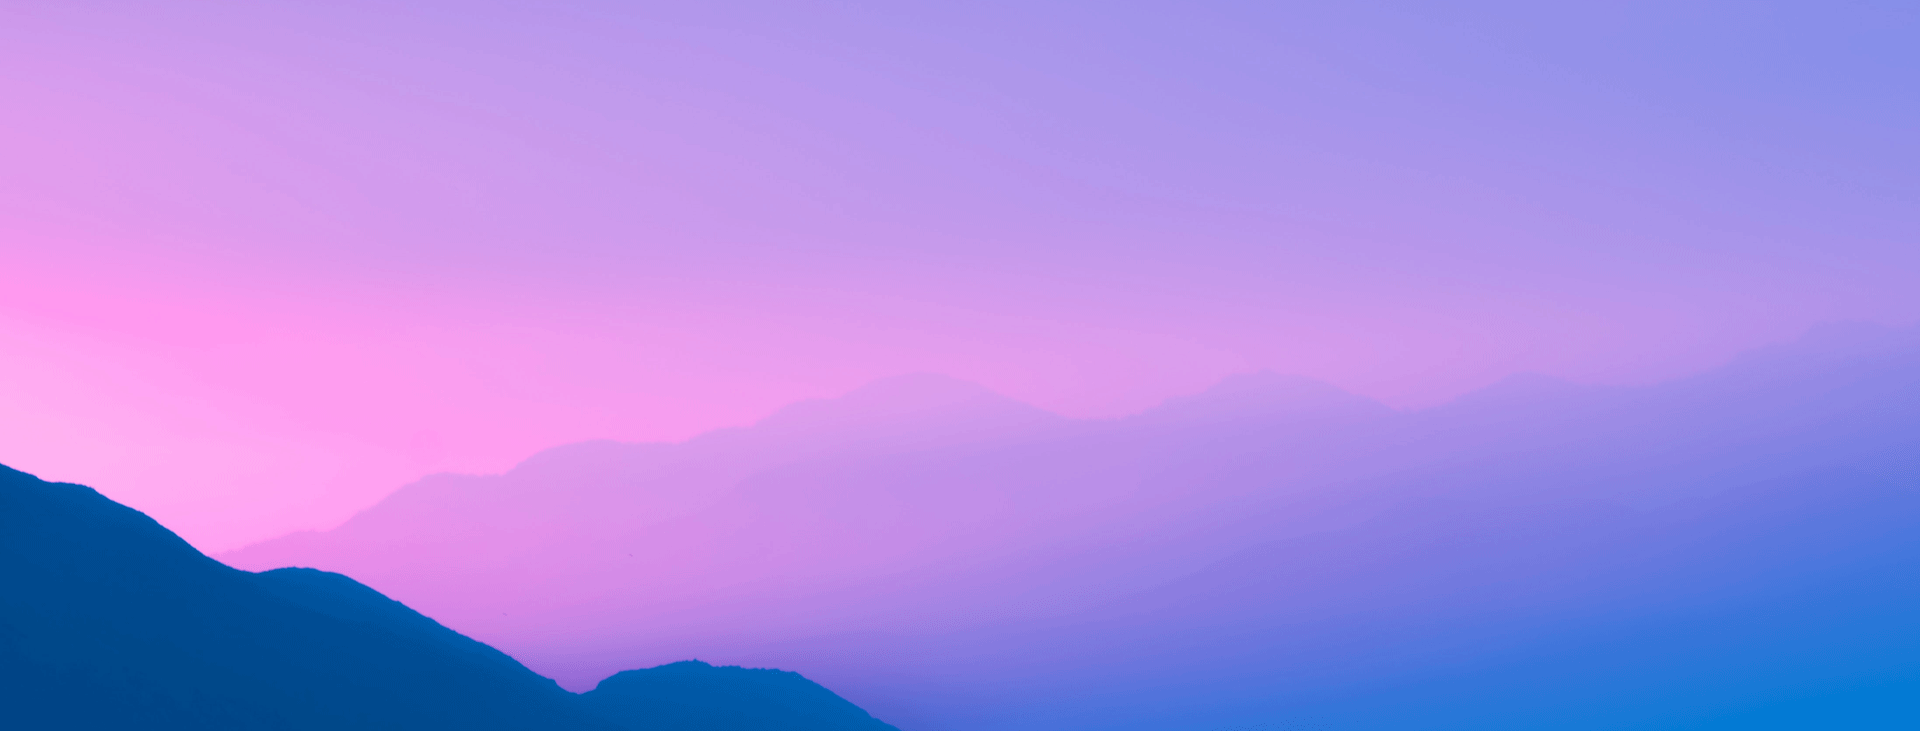 Peaceful pinky blue skyline